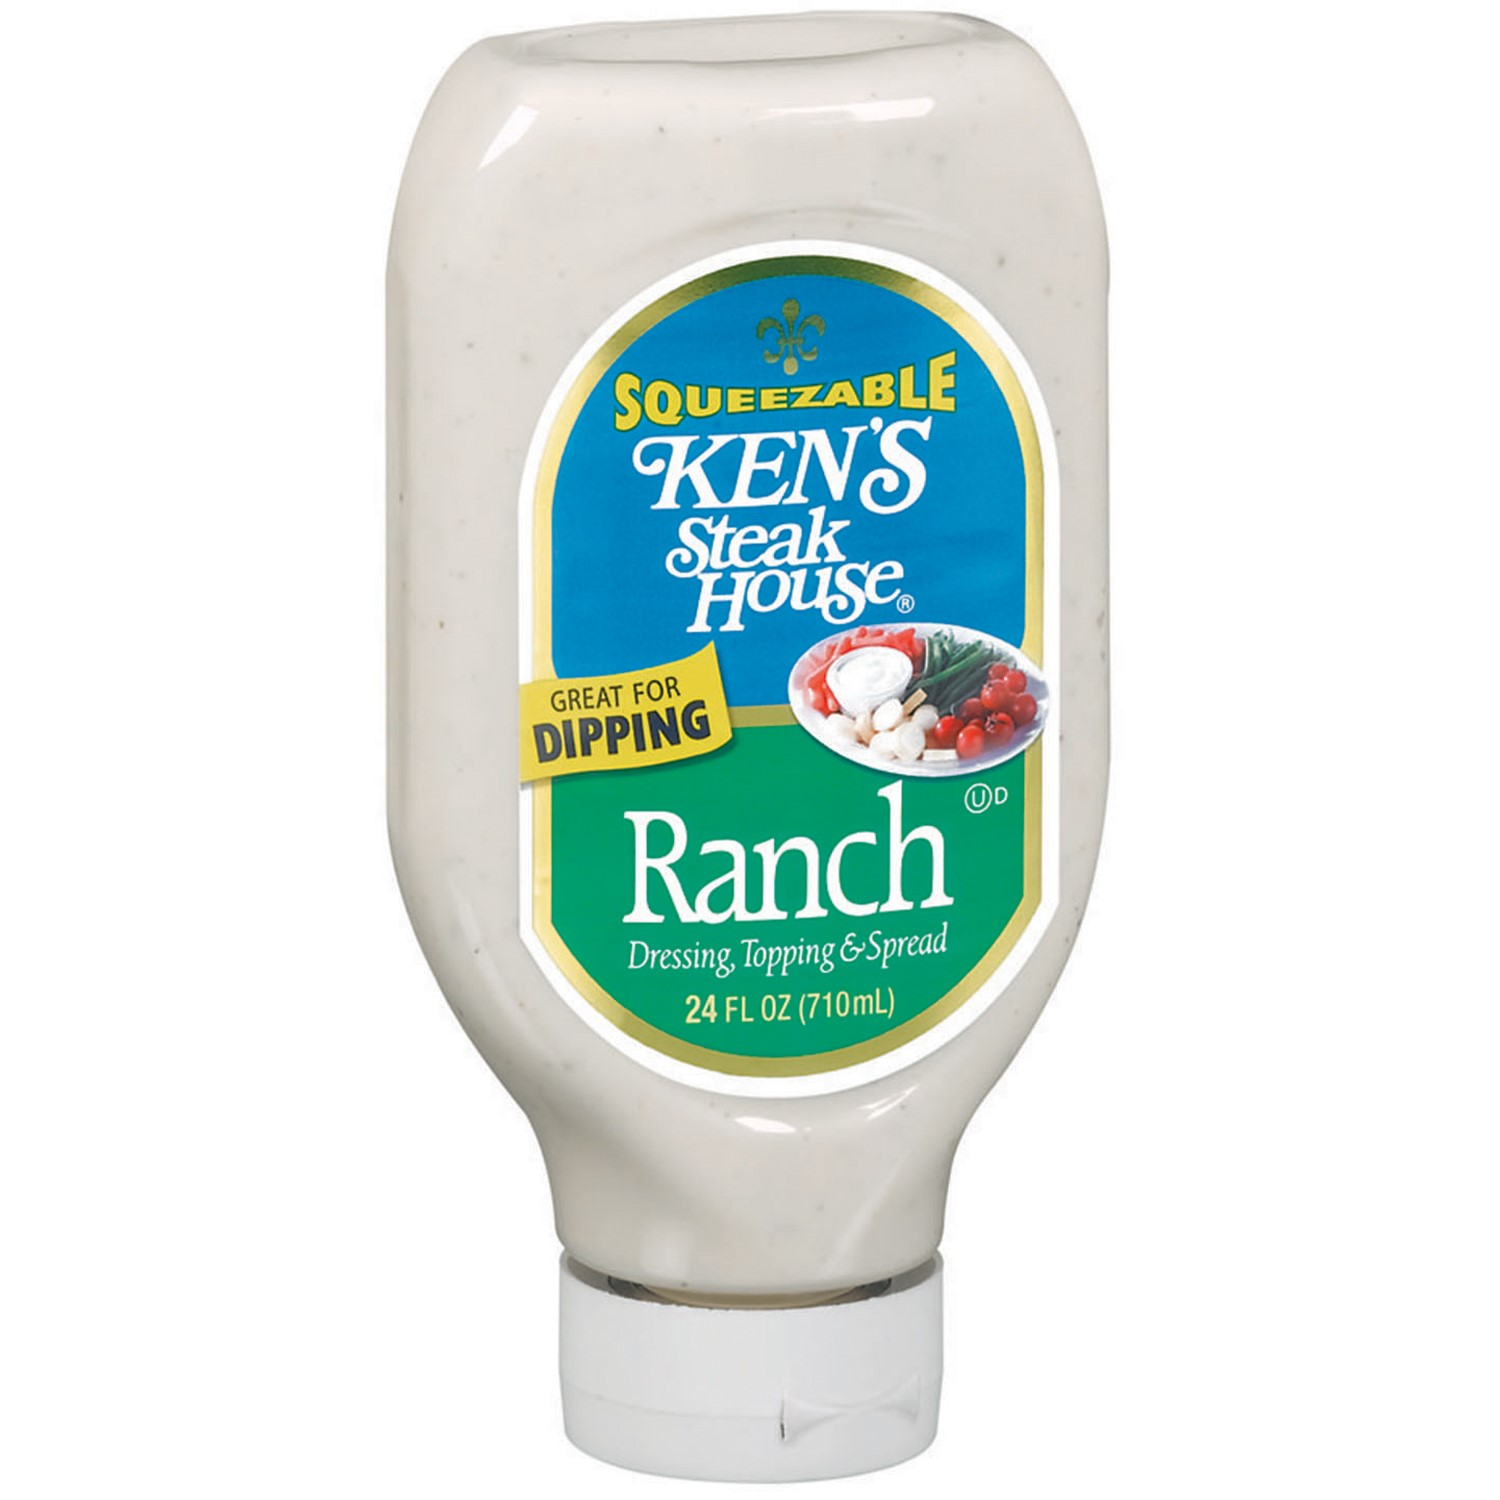 Ken's Steak House Ranch Dressing Topping & Spread, 24 Ounce